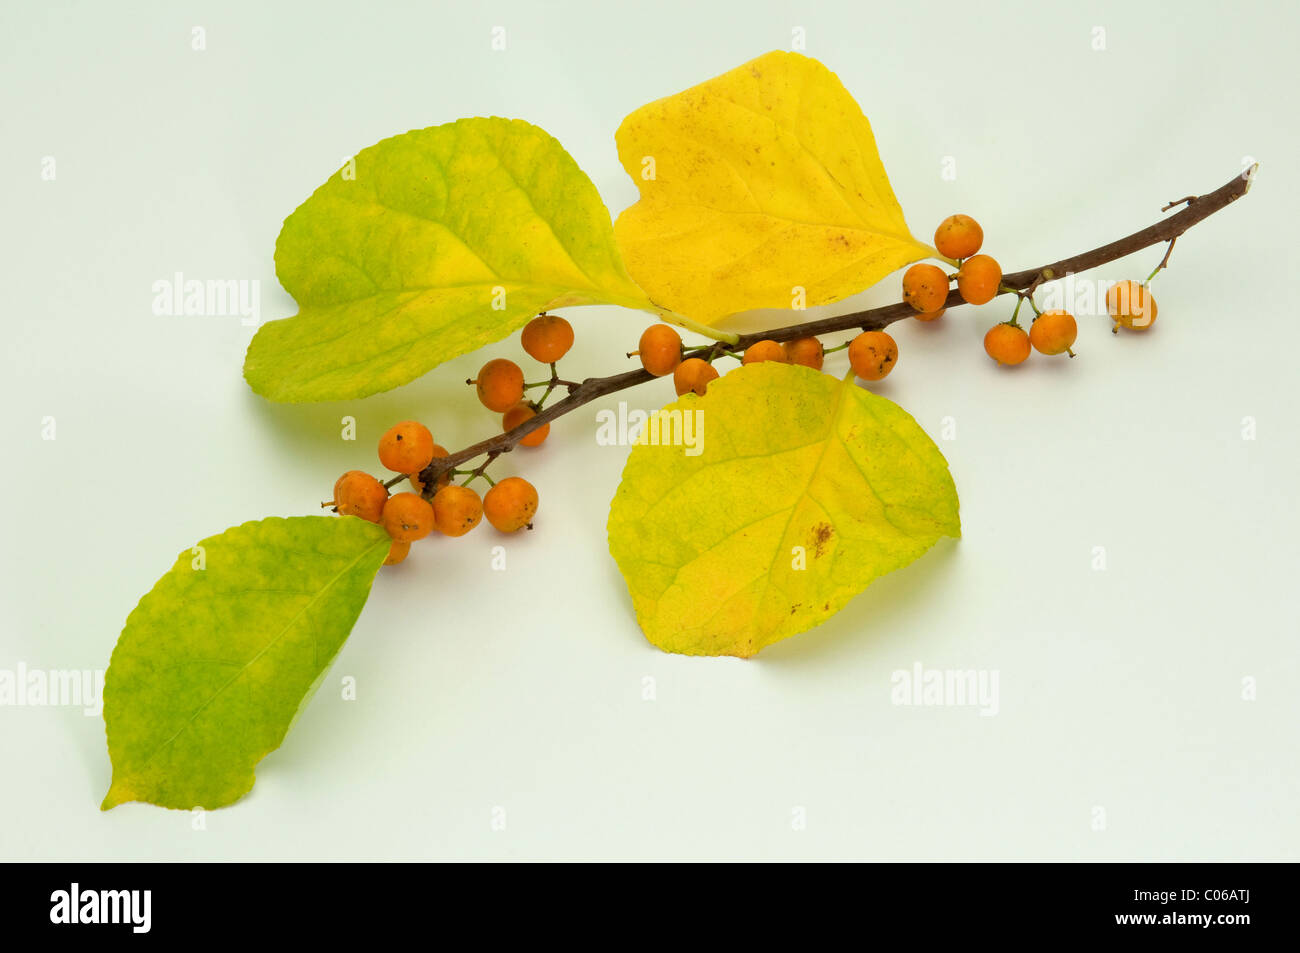 American Bittersweet (Celastrus scandens), twig with berries and leaves in autumn colors - Stock Image